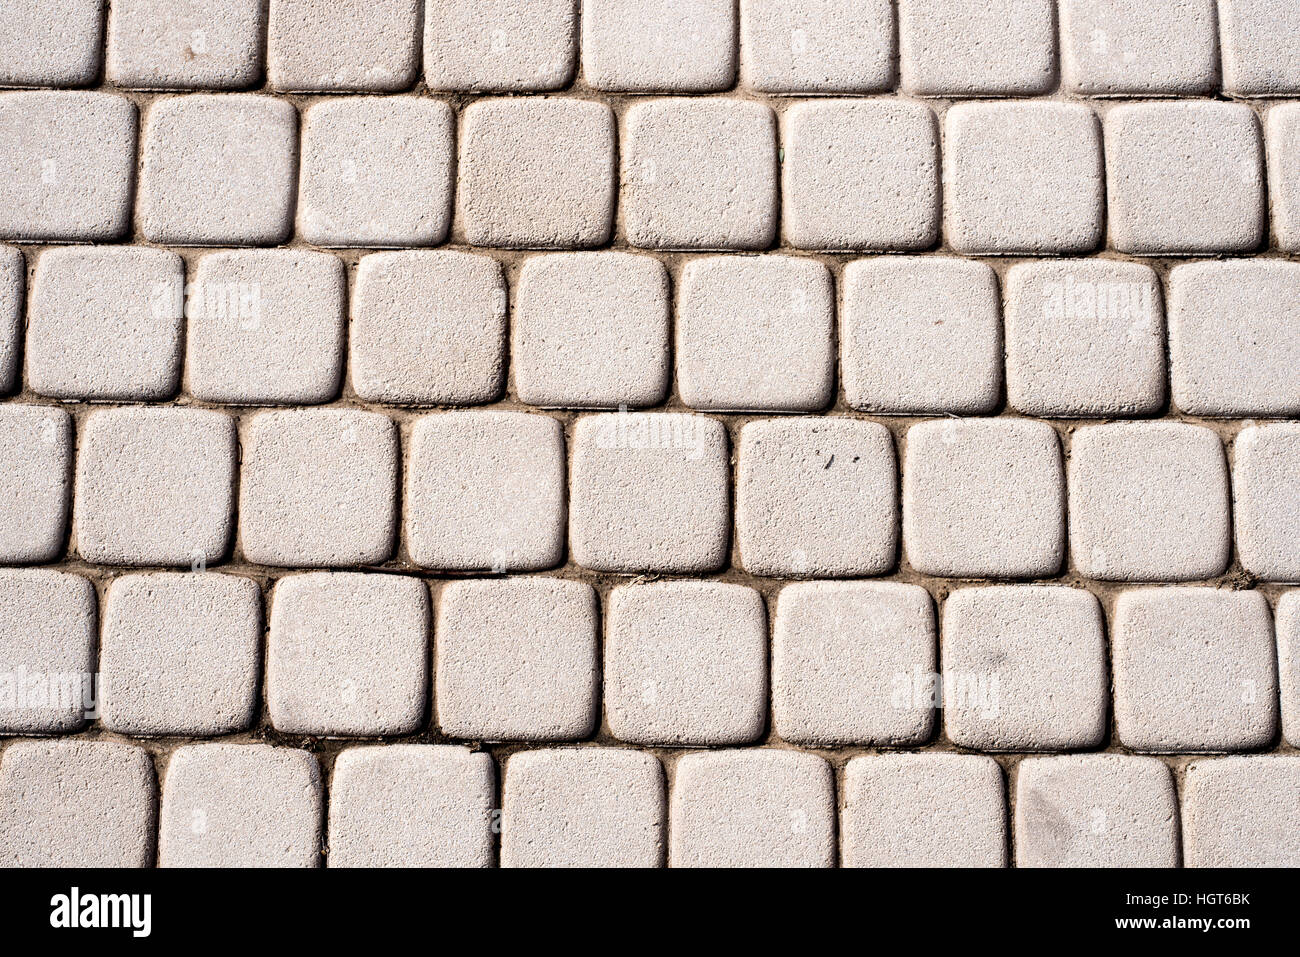 Cobble stone floor texture for design or as background - Stock Image